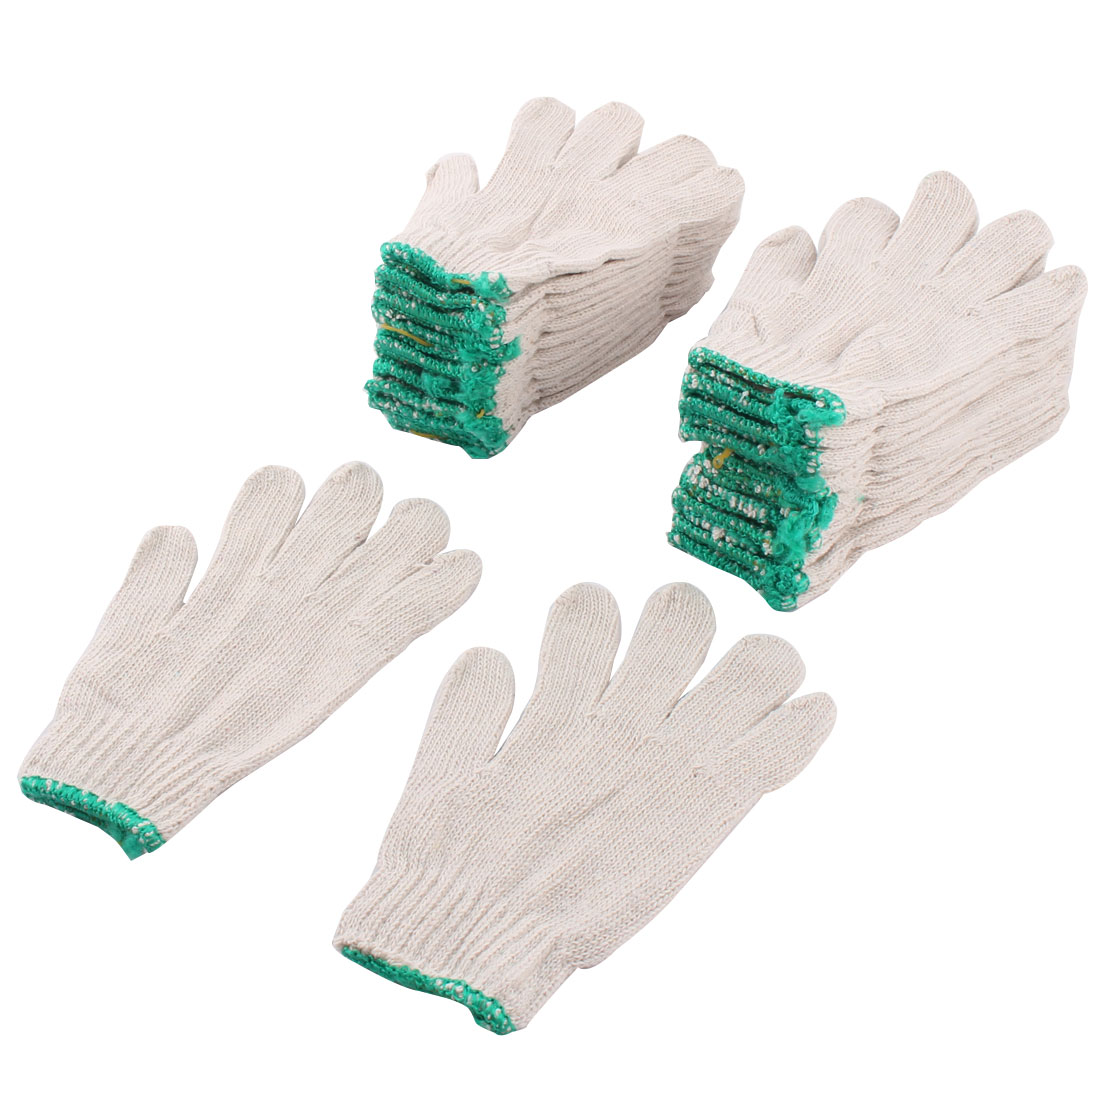 12 Pairs White Factory Industry Protective Elastic Cuff Knitted Cotton Work Gloves